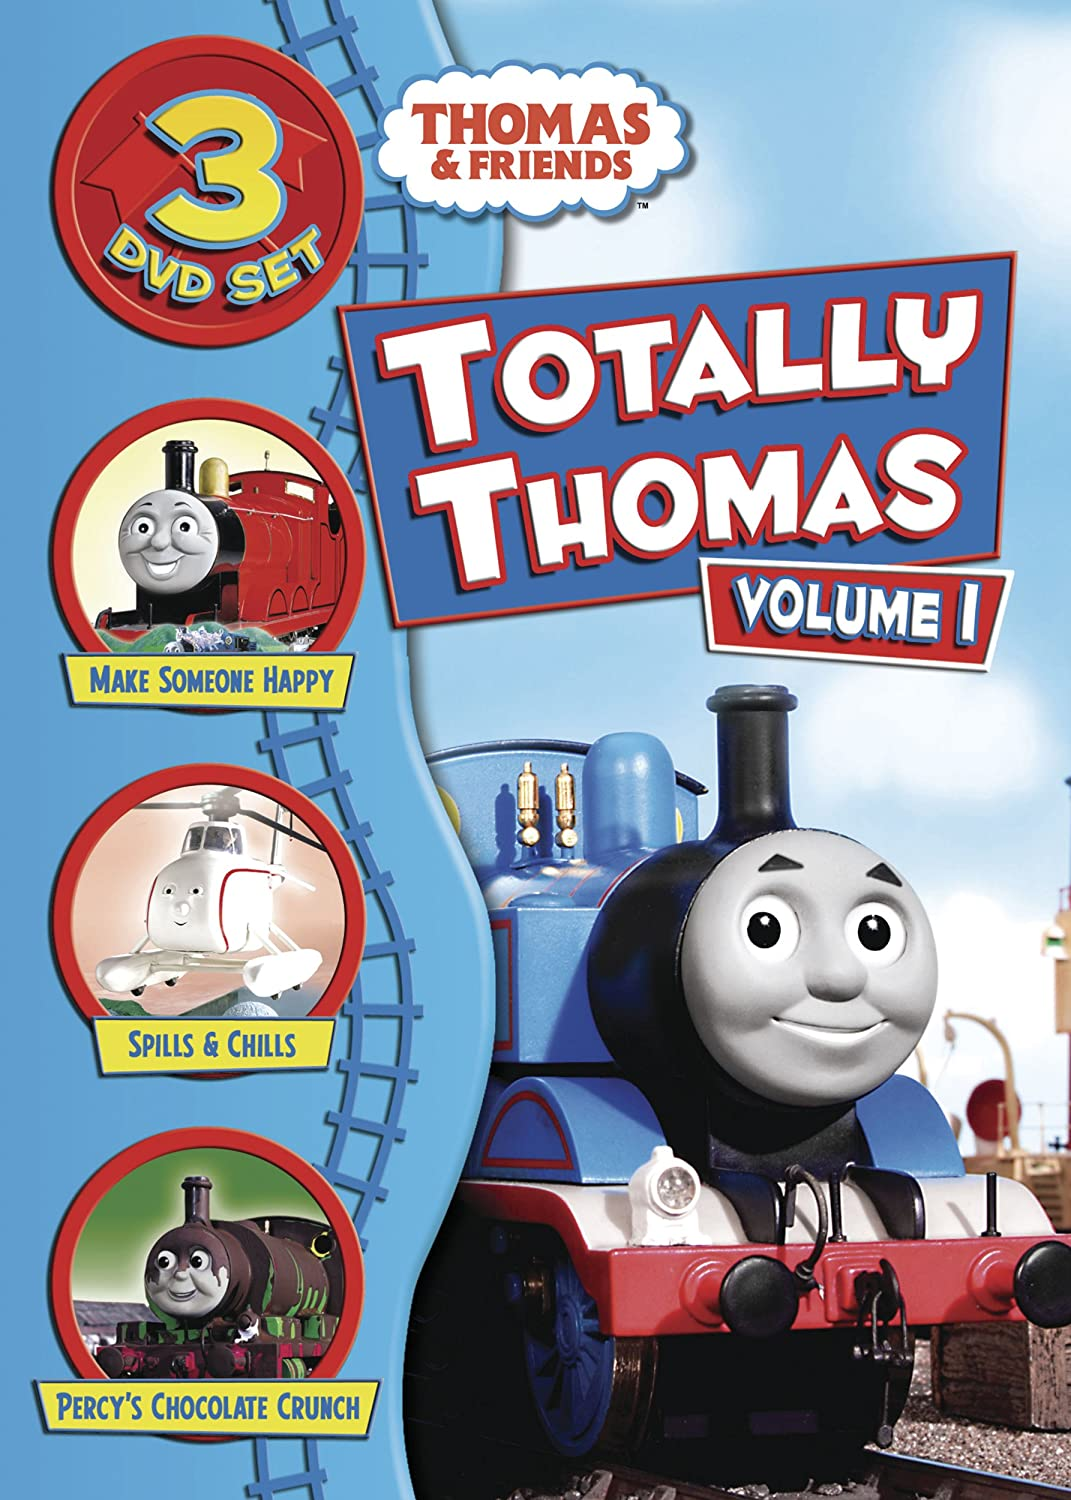 Amazon.com: Tho-totally Thomas Vol1 Sacdvd: Thomas & Friends ...